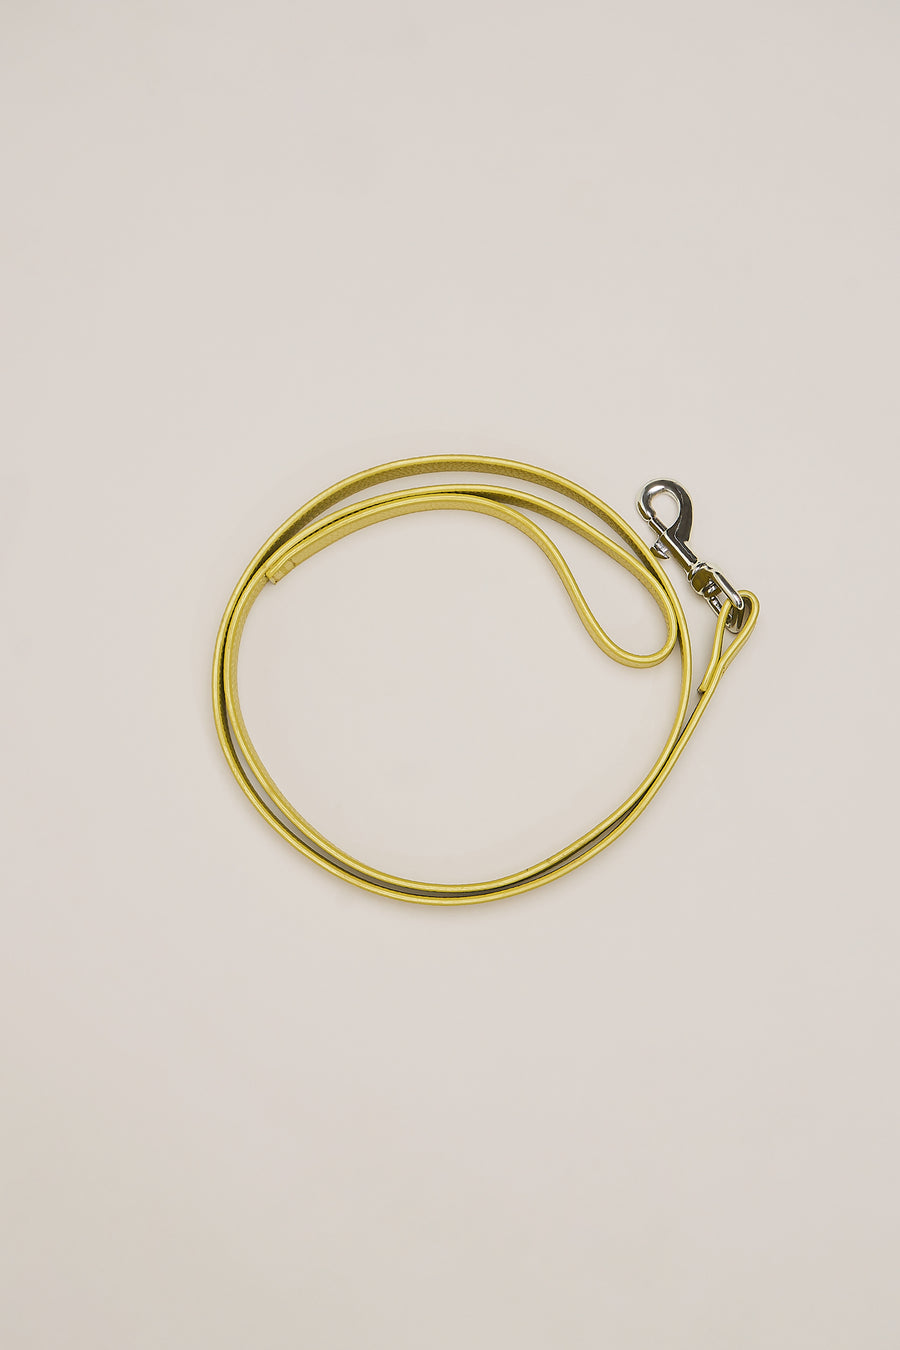 CaSa Dog Leash in Chartreuse